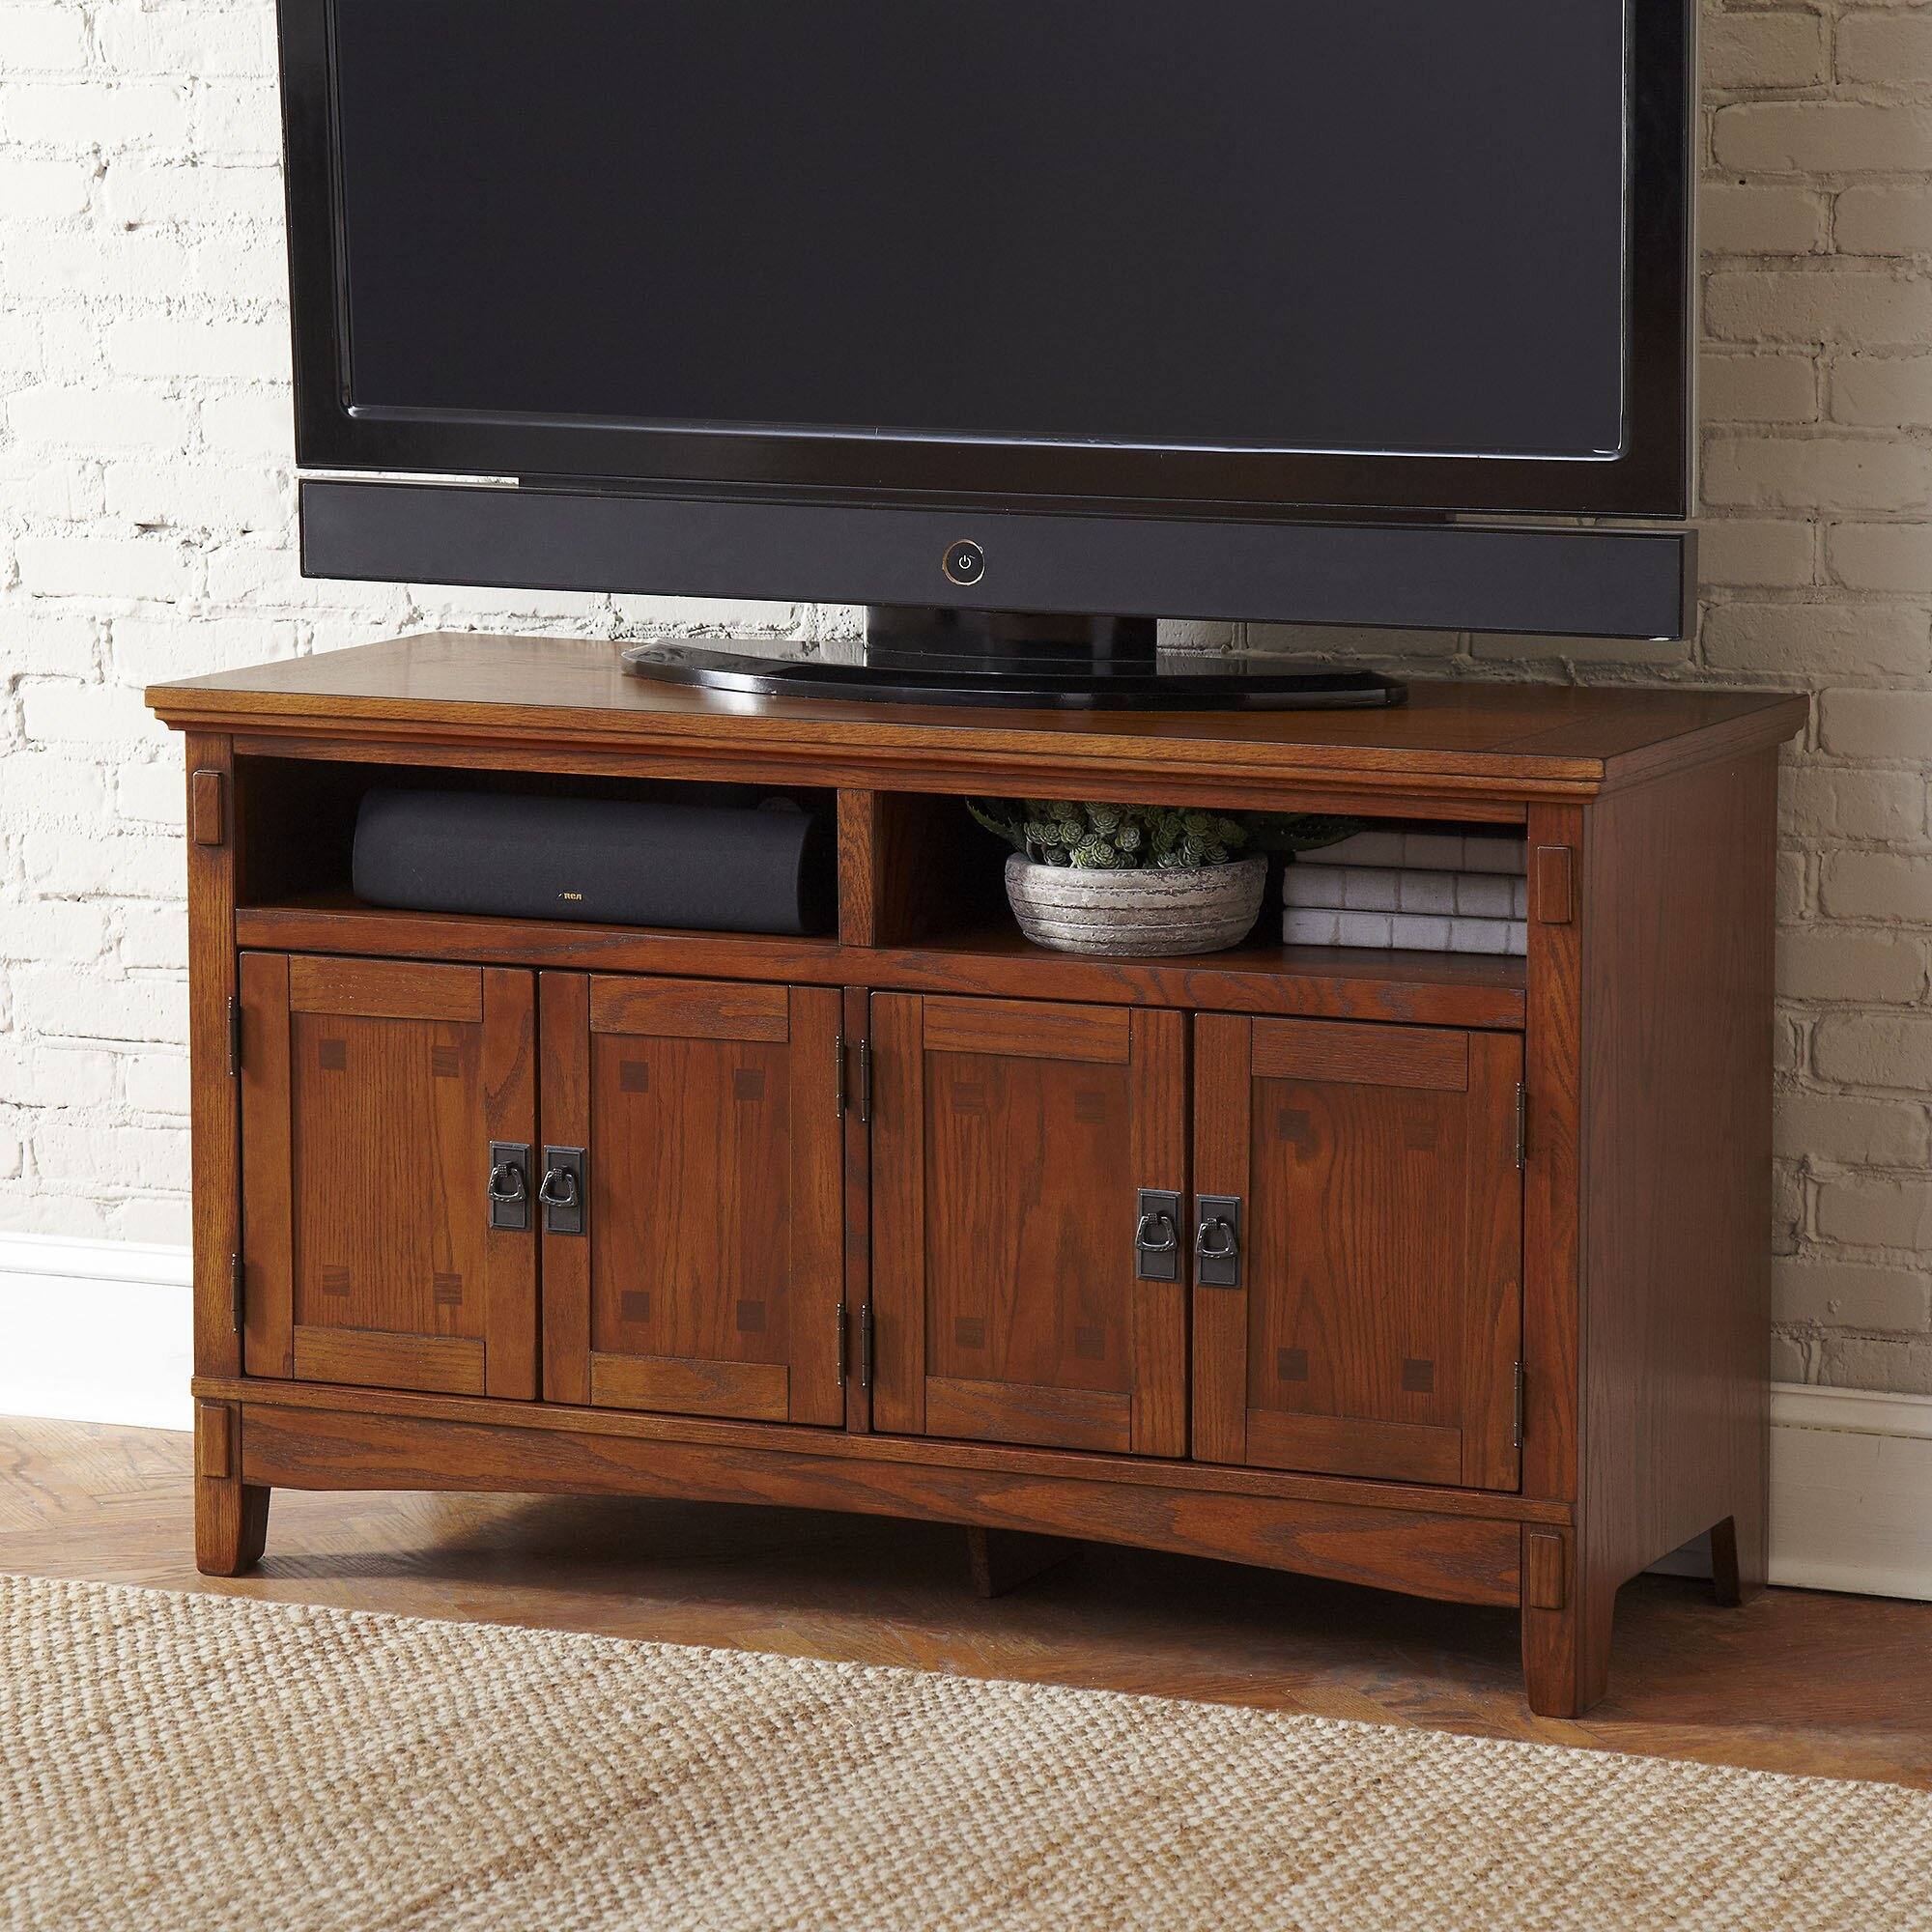 birch lane hickham 50 inch tv stand reviews wayfair. Black Bedroom Furniture Sets. Home Design Ideas